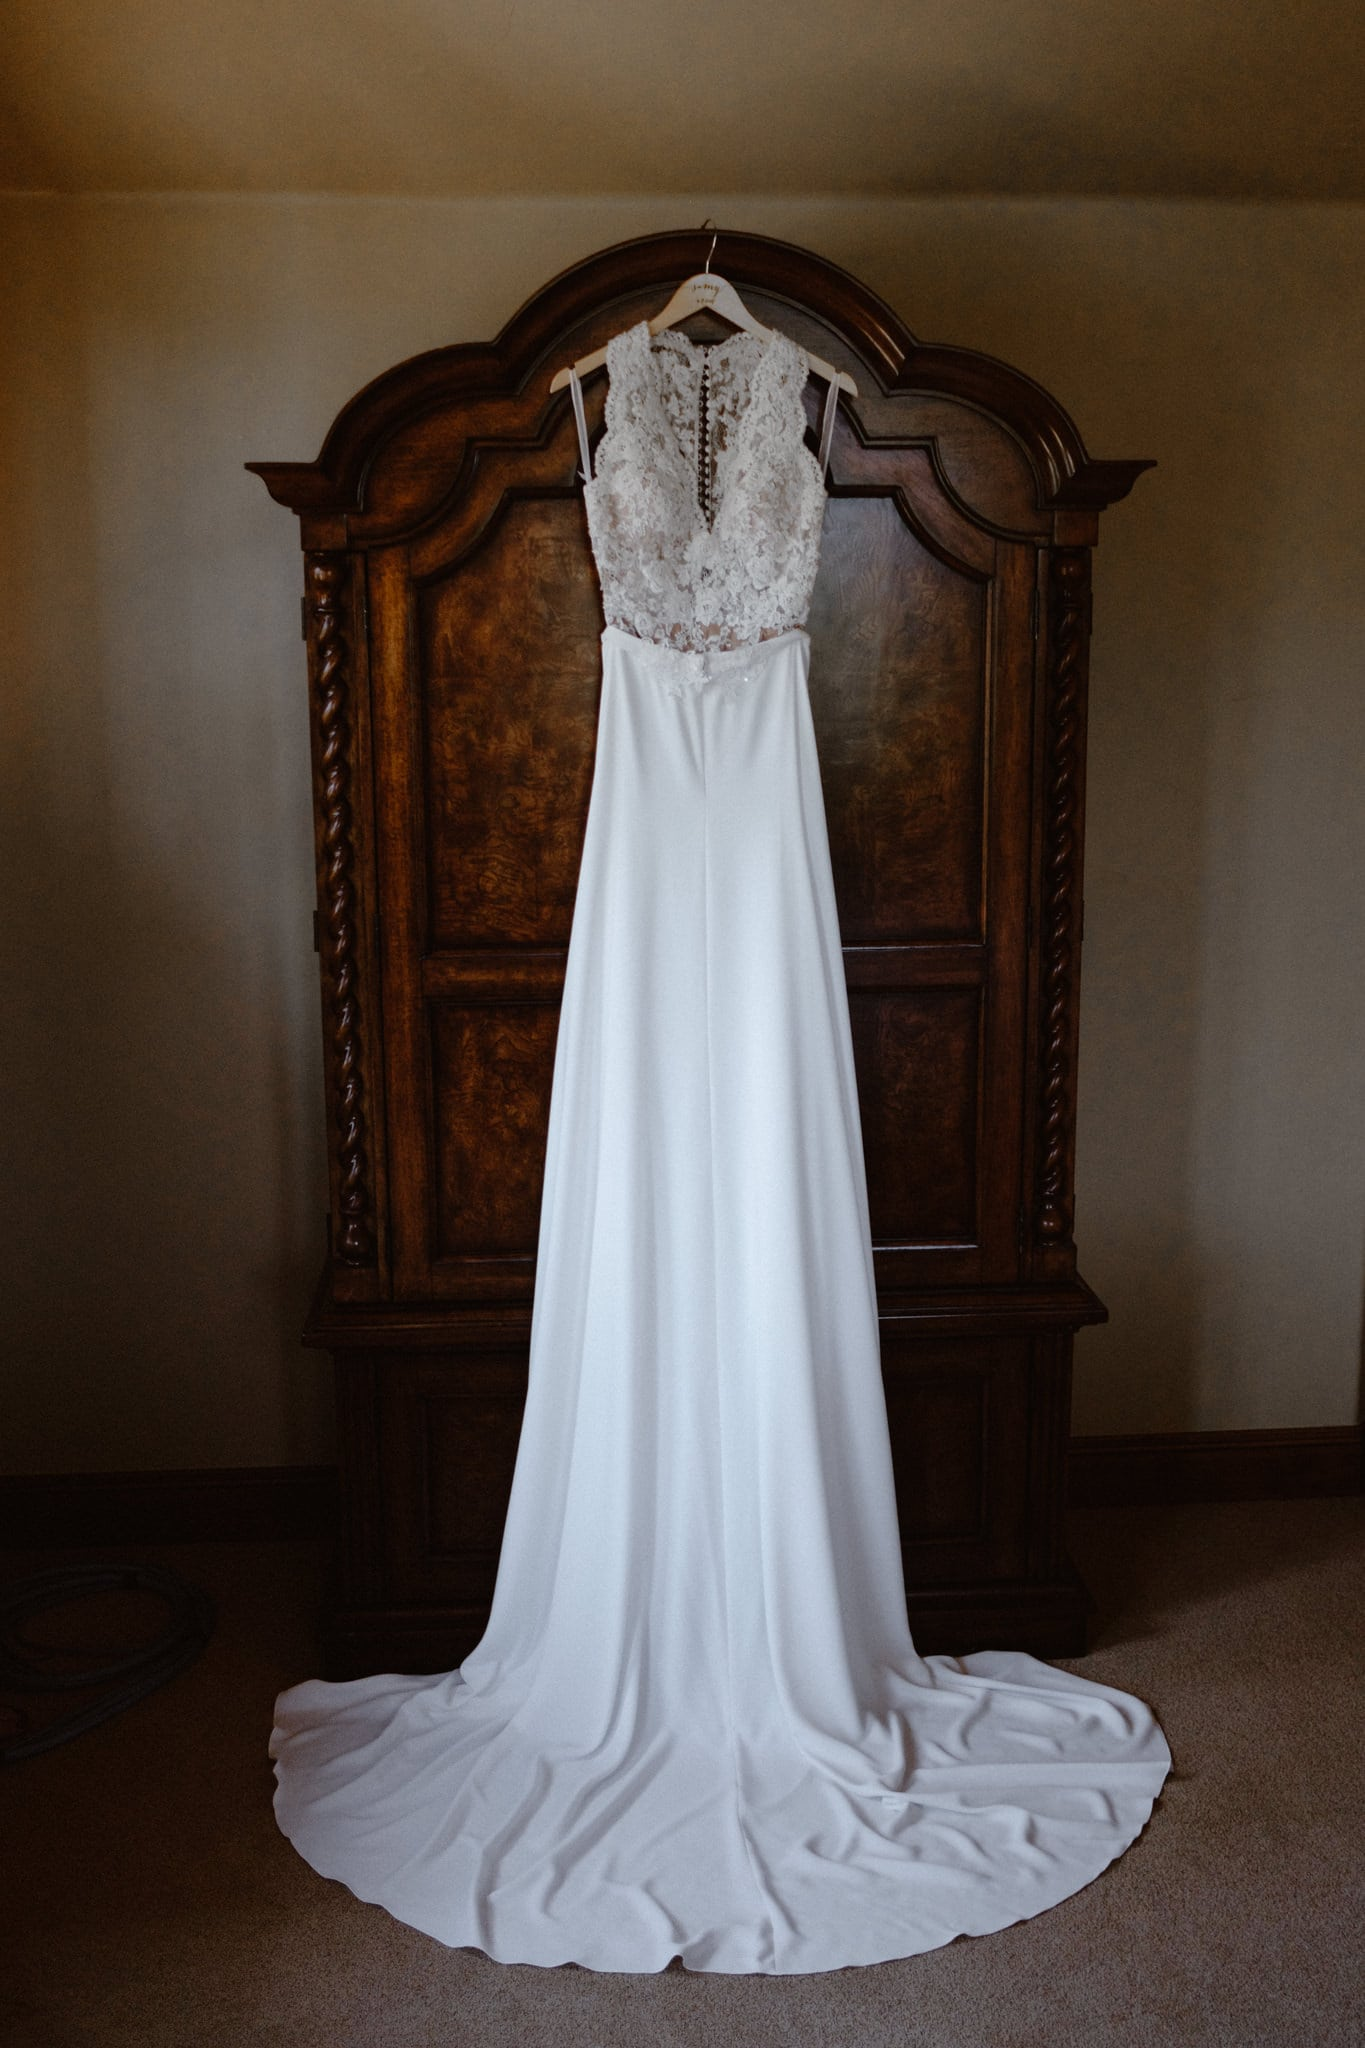 Wedding dress hanging on armoire, lace body suit and long sleek skirt